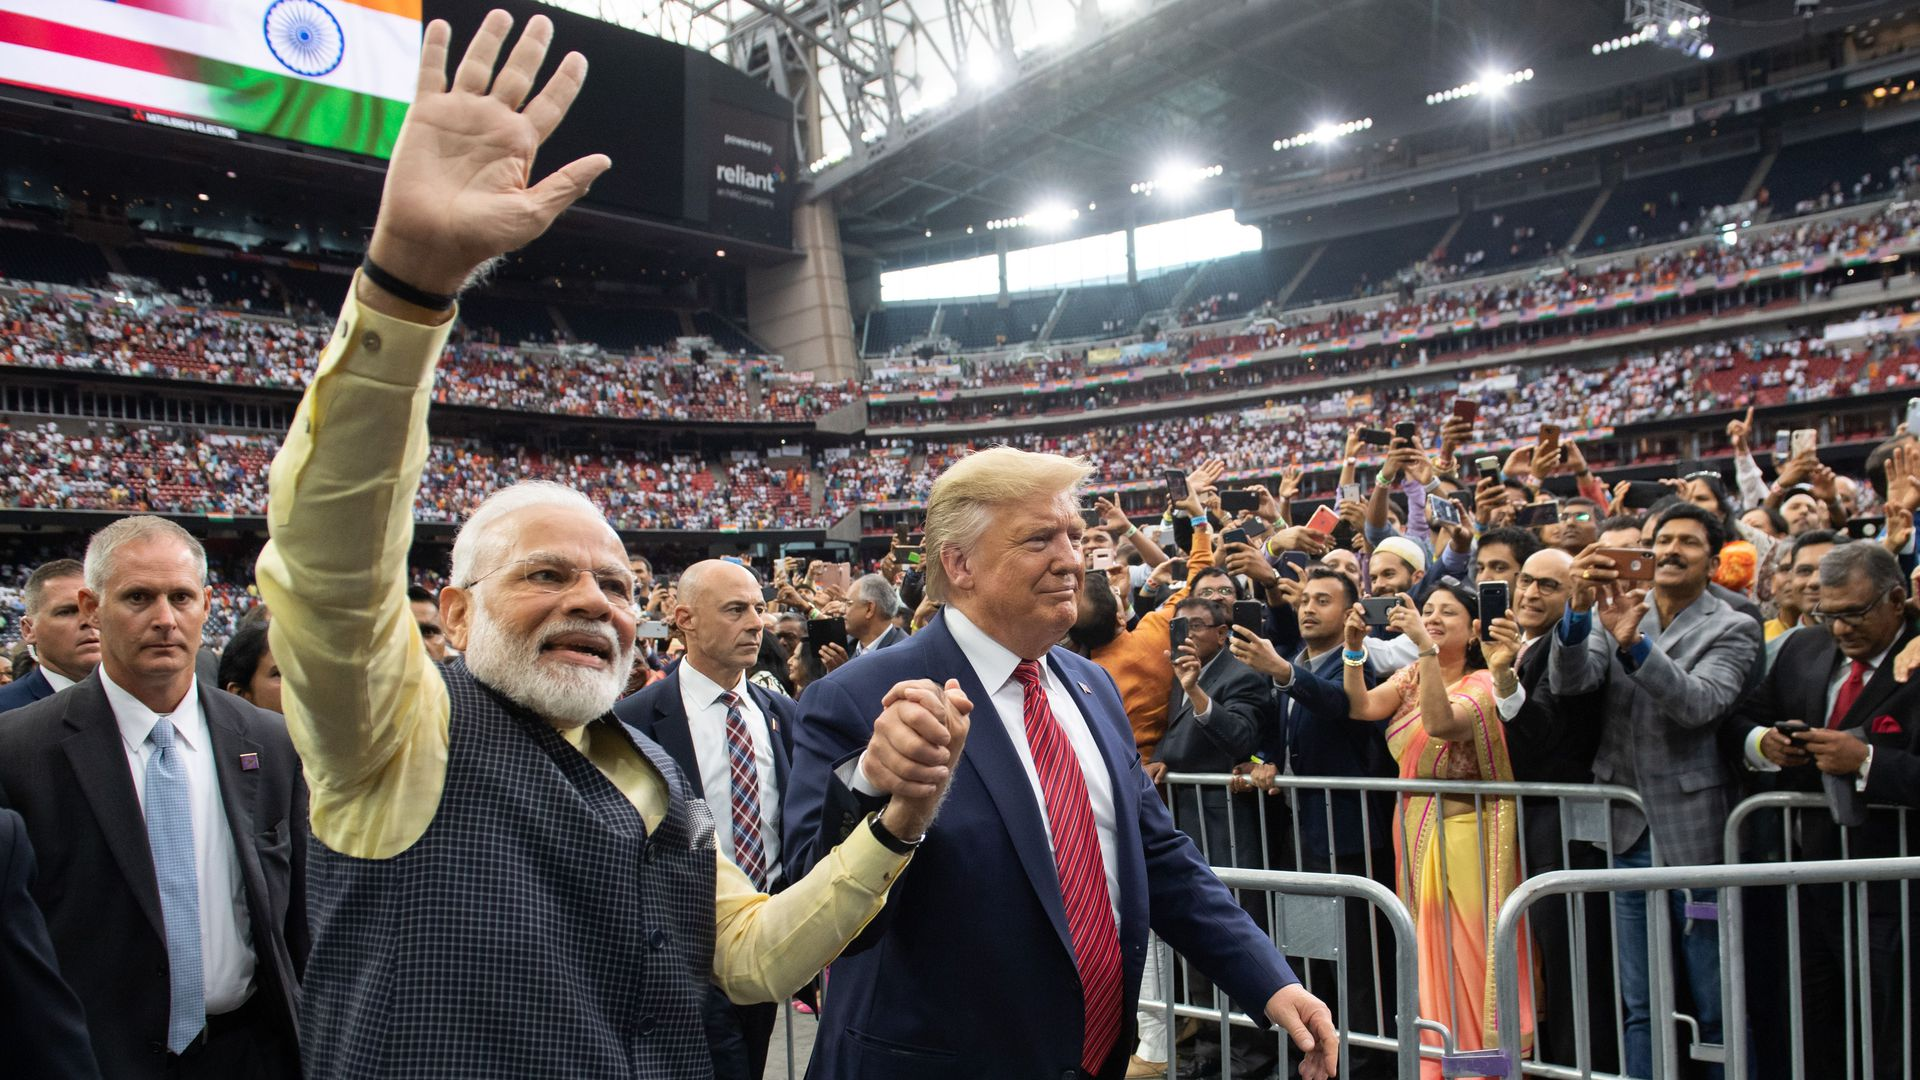 """In photos: Trump addresses 50,000 at Texas """"Howdy Modi"""" rally for visiting Indian PM"""